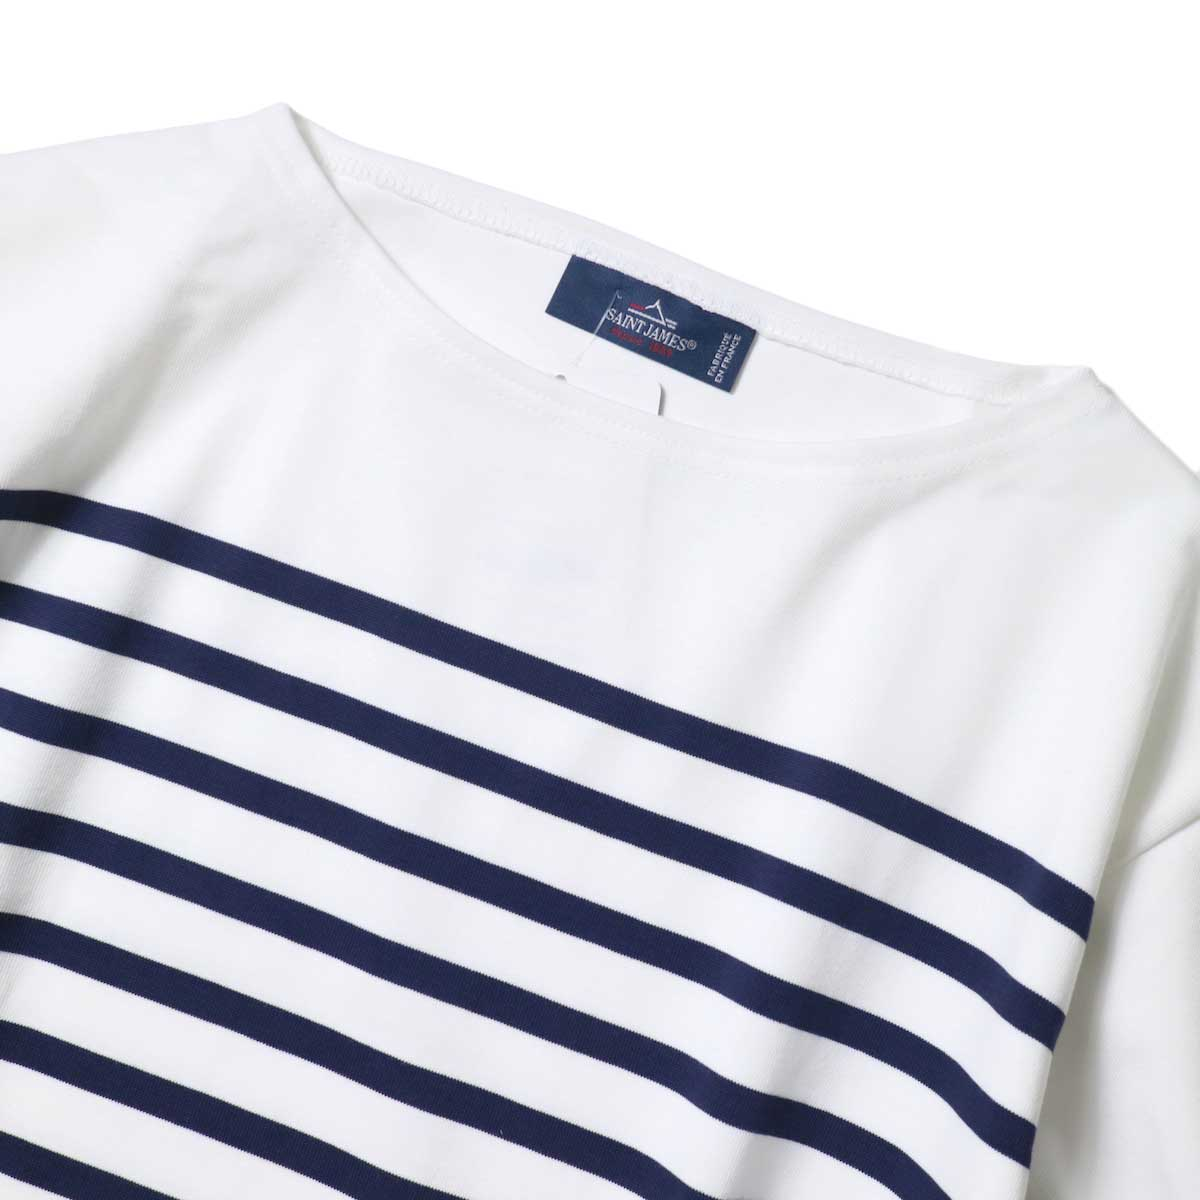 SAINT JAMES / NAVAL (Neige / Marine) 襟